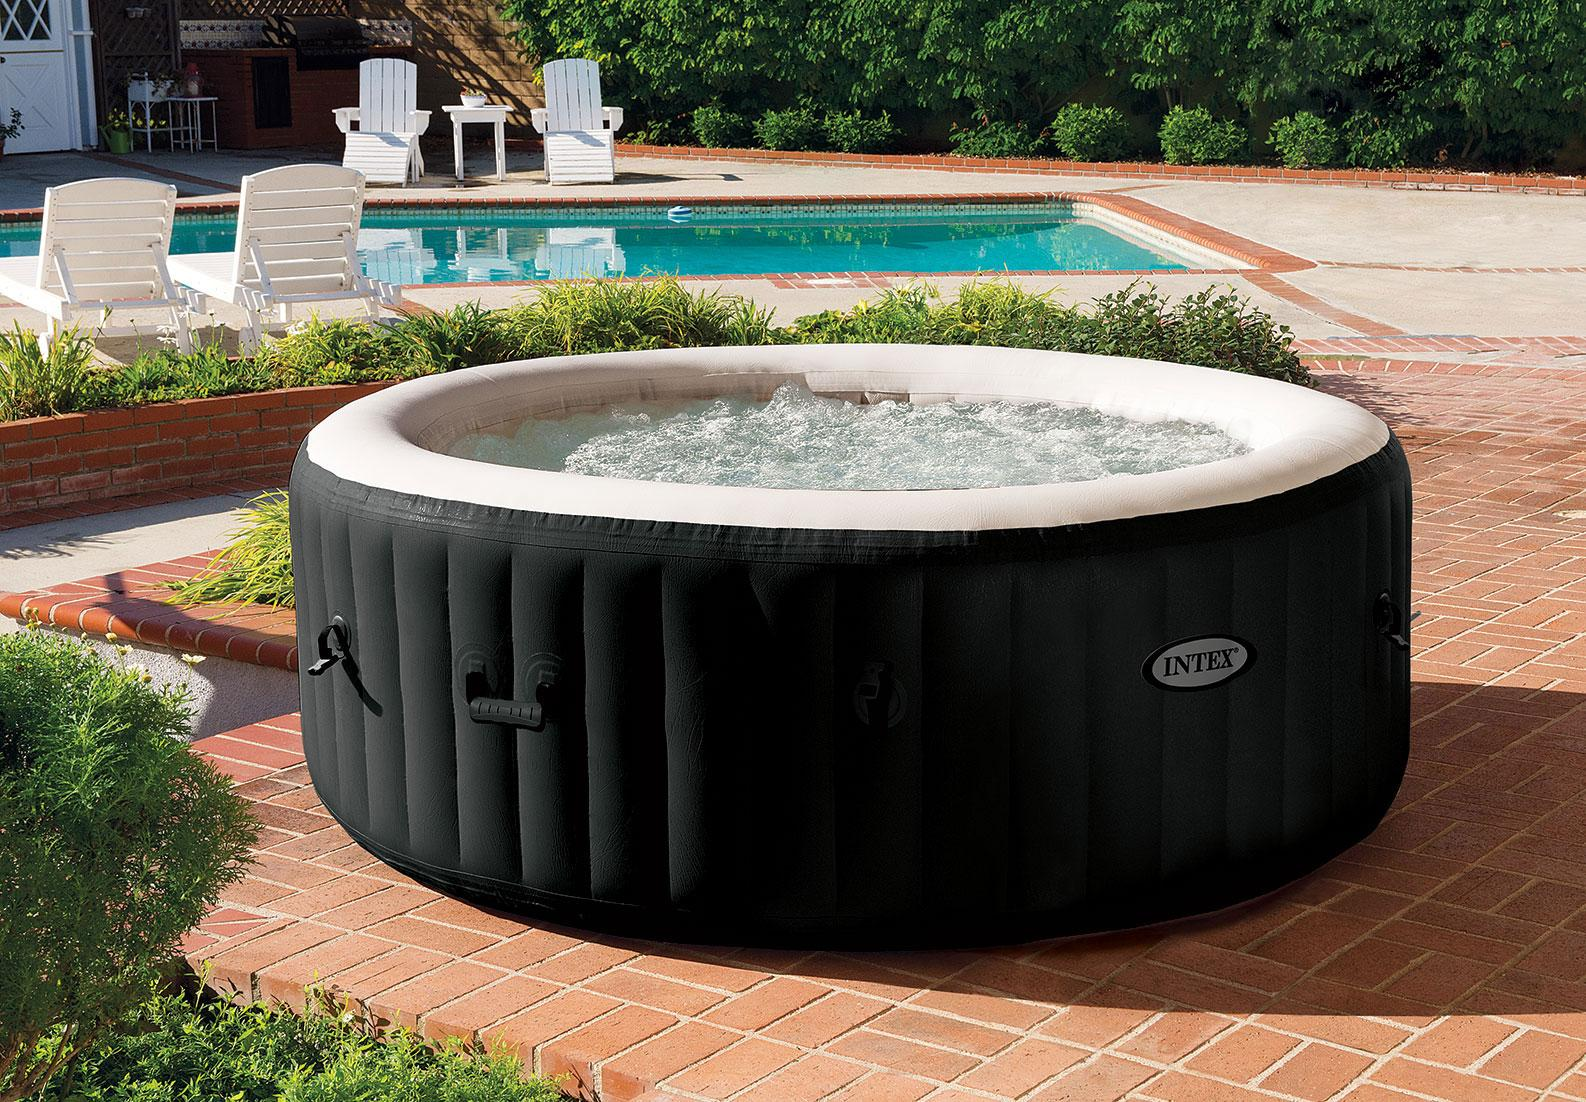 intex purespa jet bubble deluxe portable hot tub round 77 onyx black garden. Black Bedroom Furniture Sets. Home Design Ideas